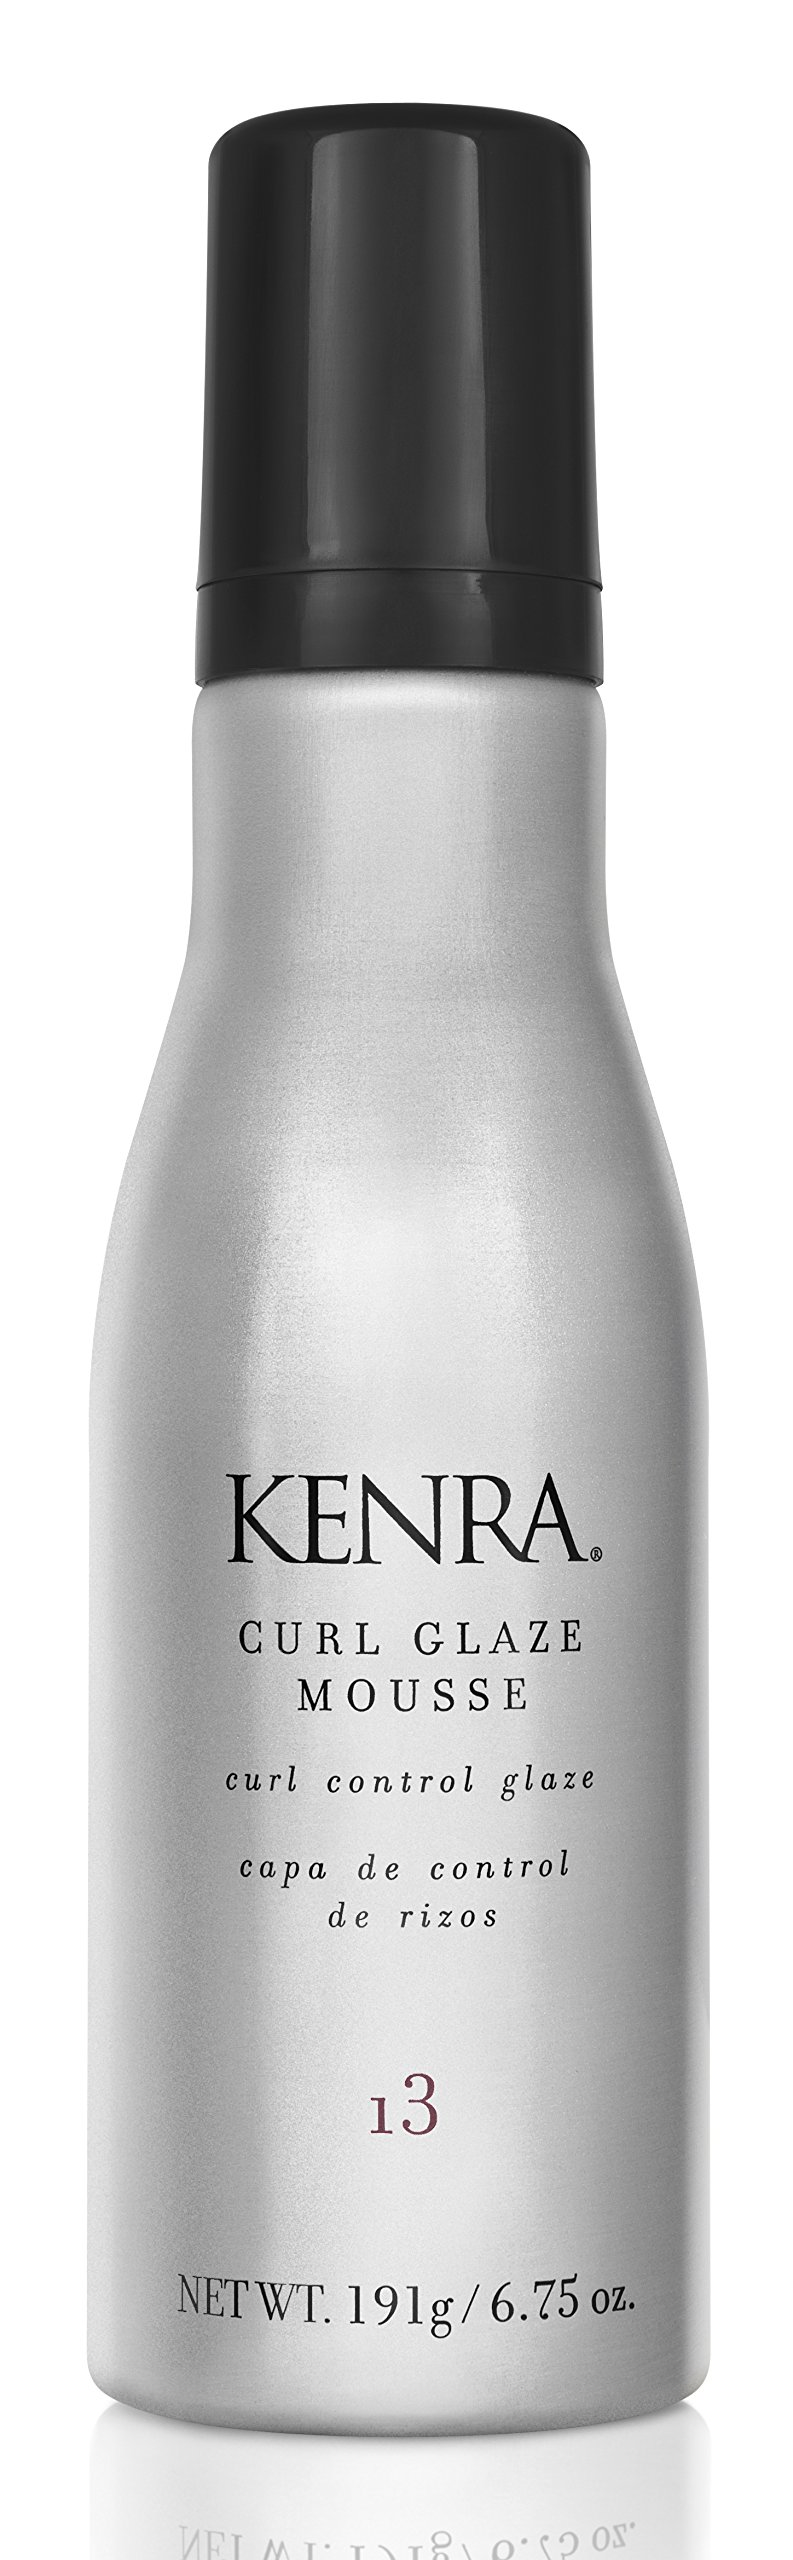 Kenra Curl Glaze Mousse #13, 6.75-Ounce by Kenra